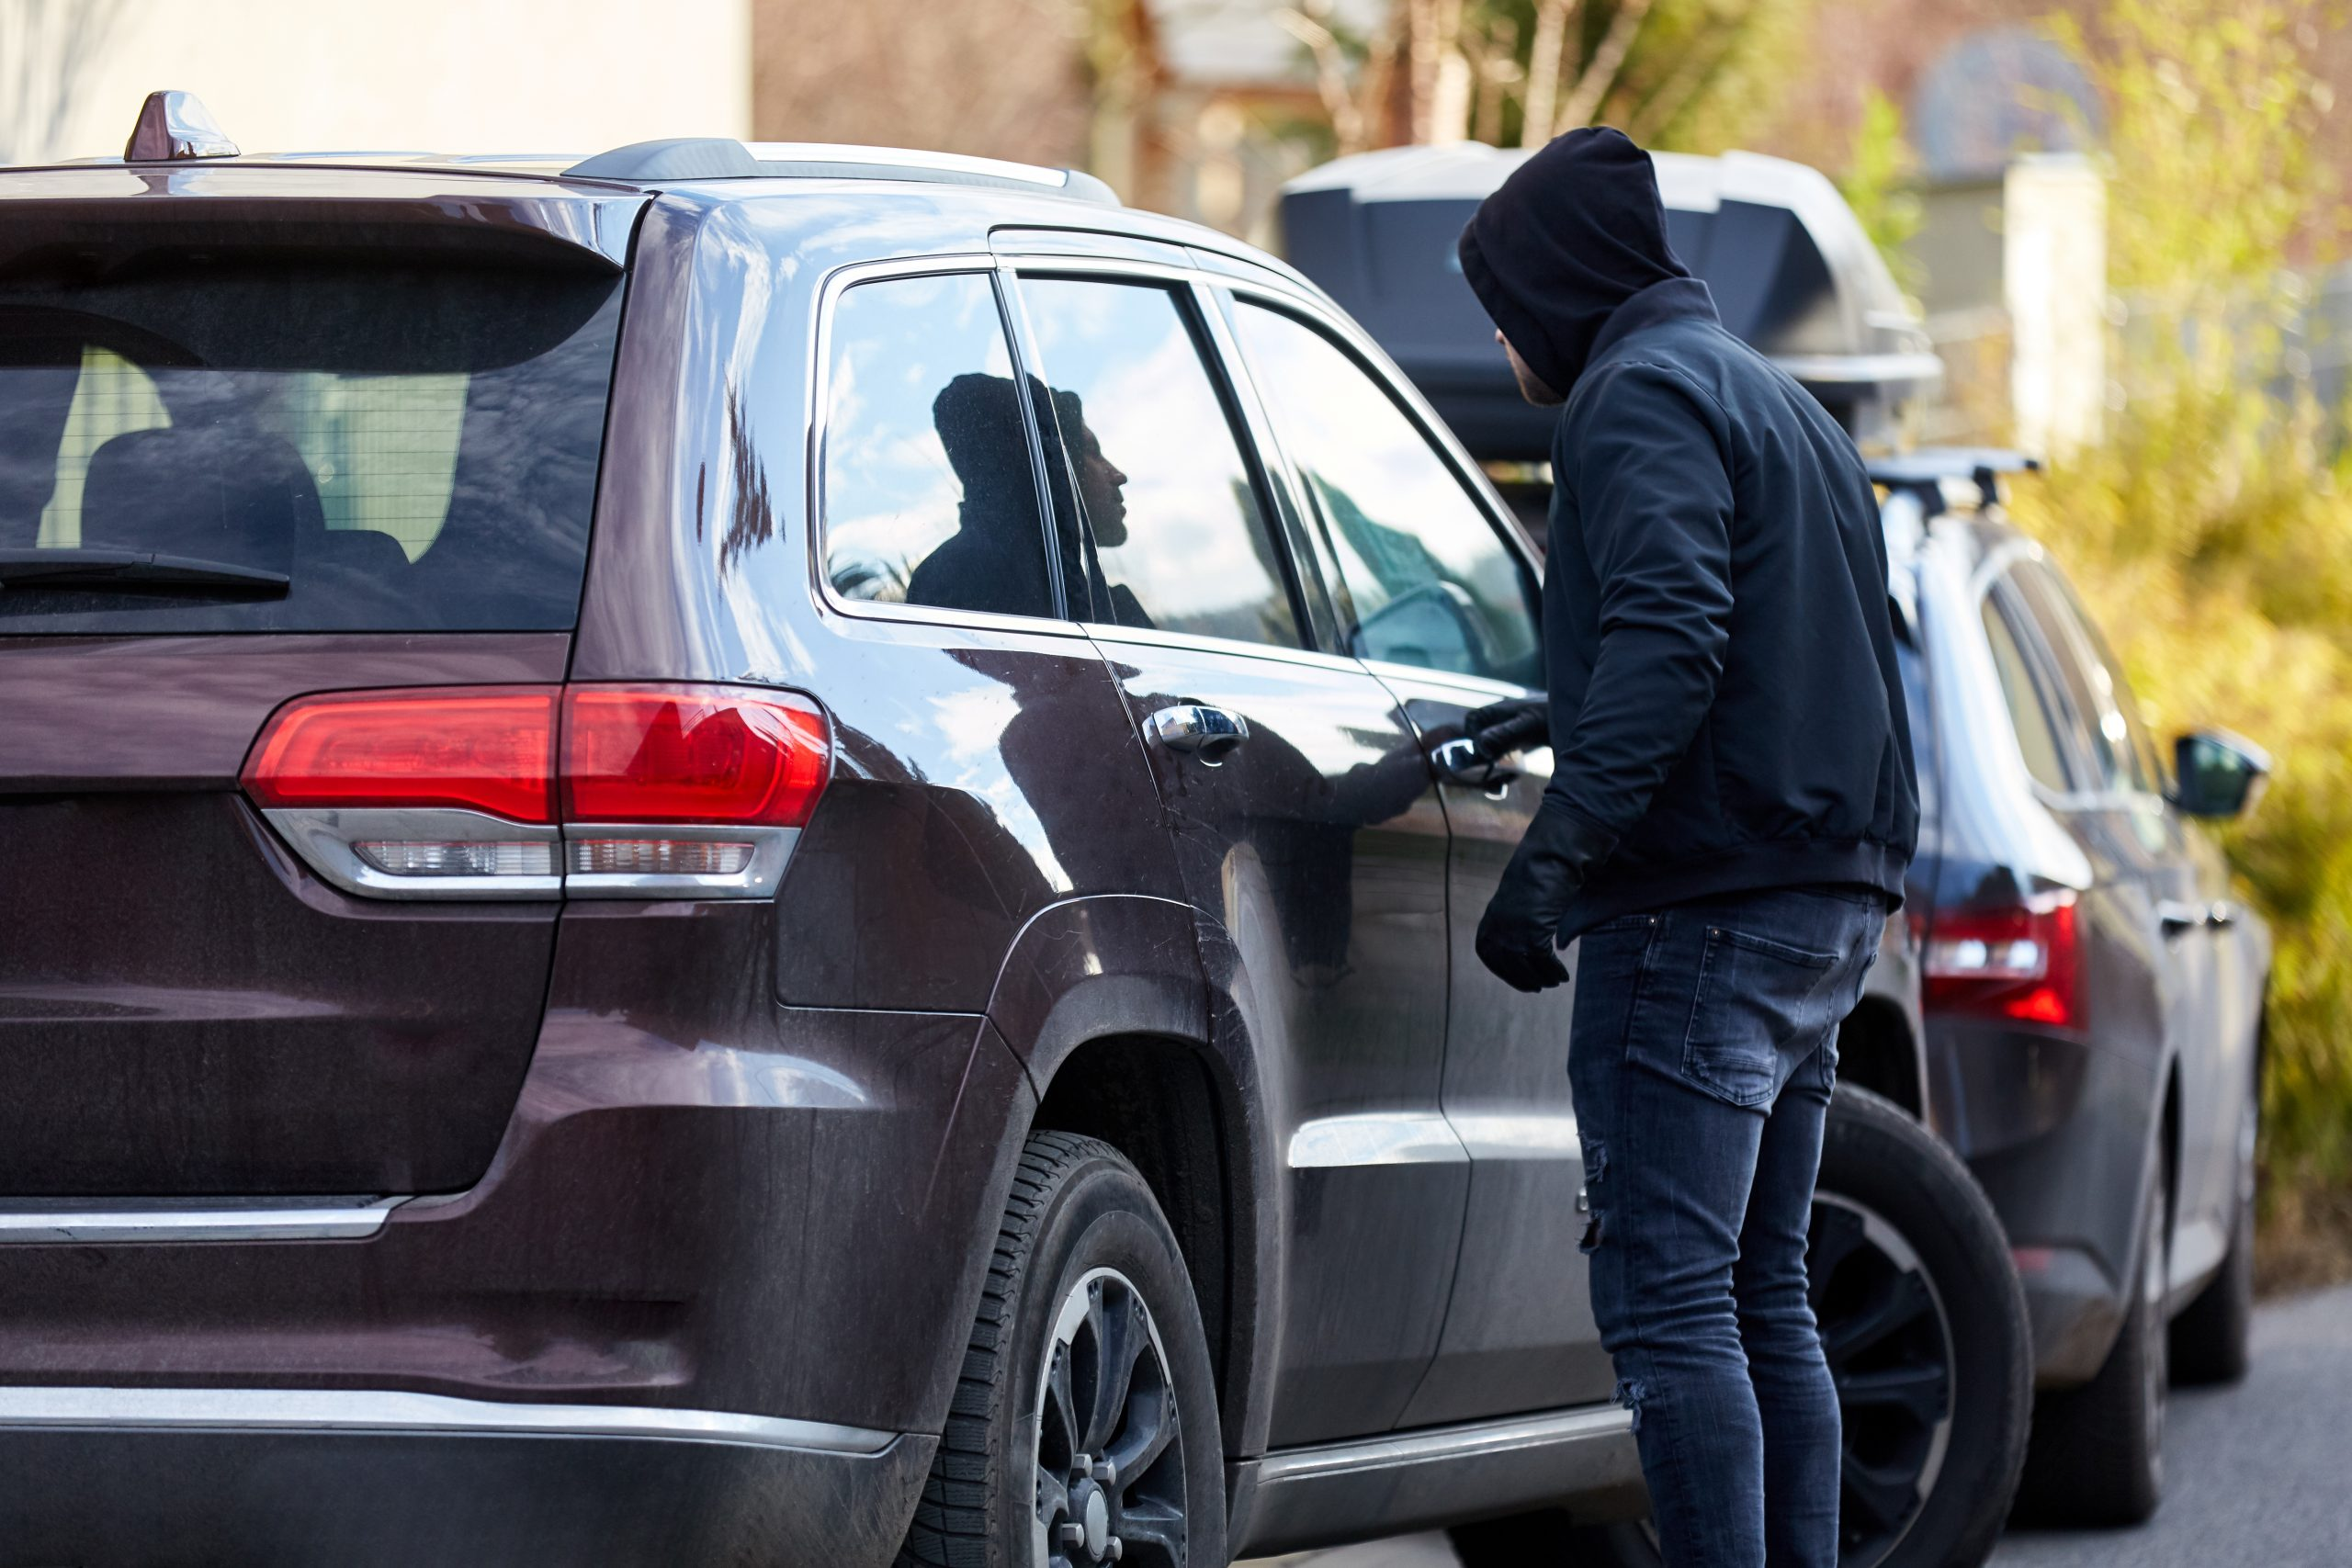 Car Theft Rises as UK COVID-19 Restrictions Are Eased